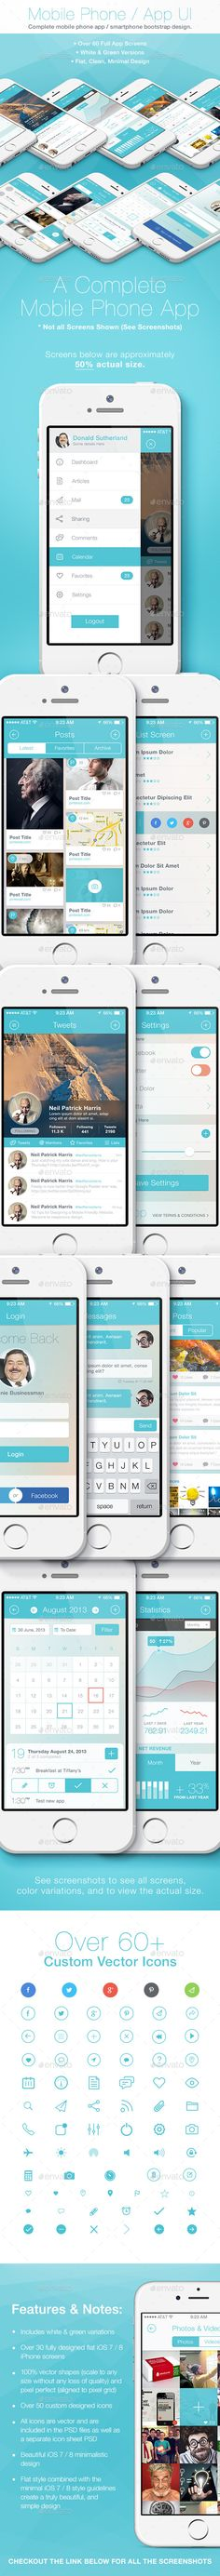 Flat Phone / Mobile App Bootstrap UI - User Interfaces Web Elements